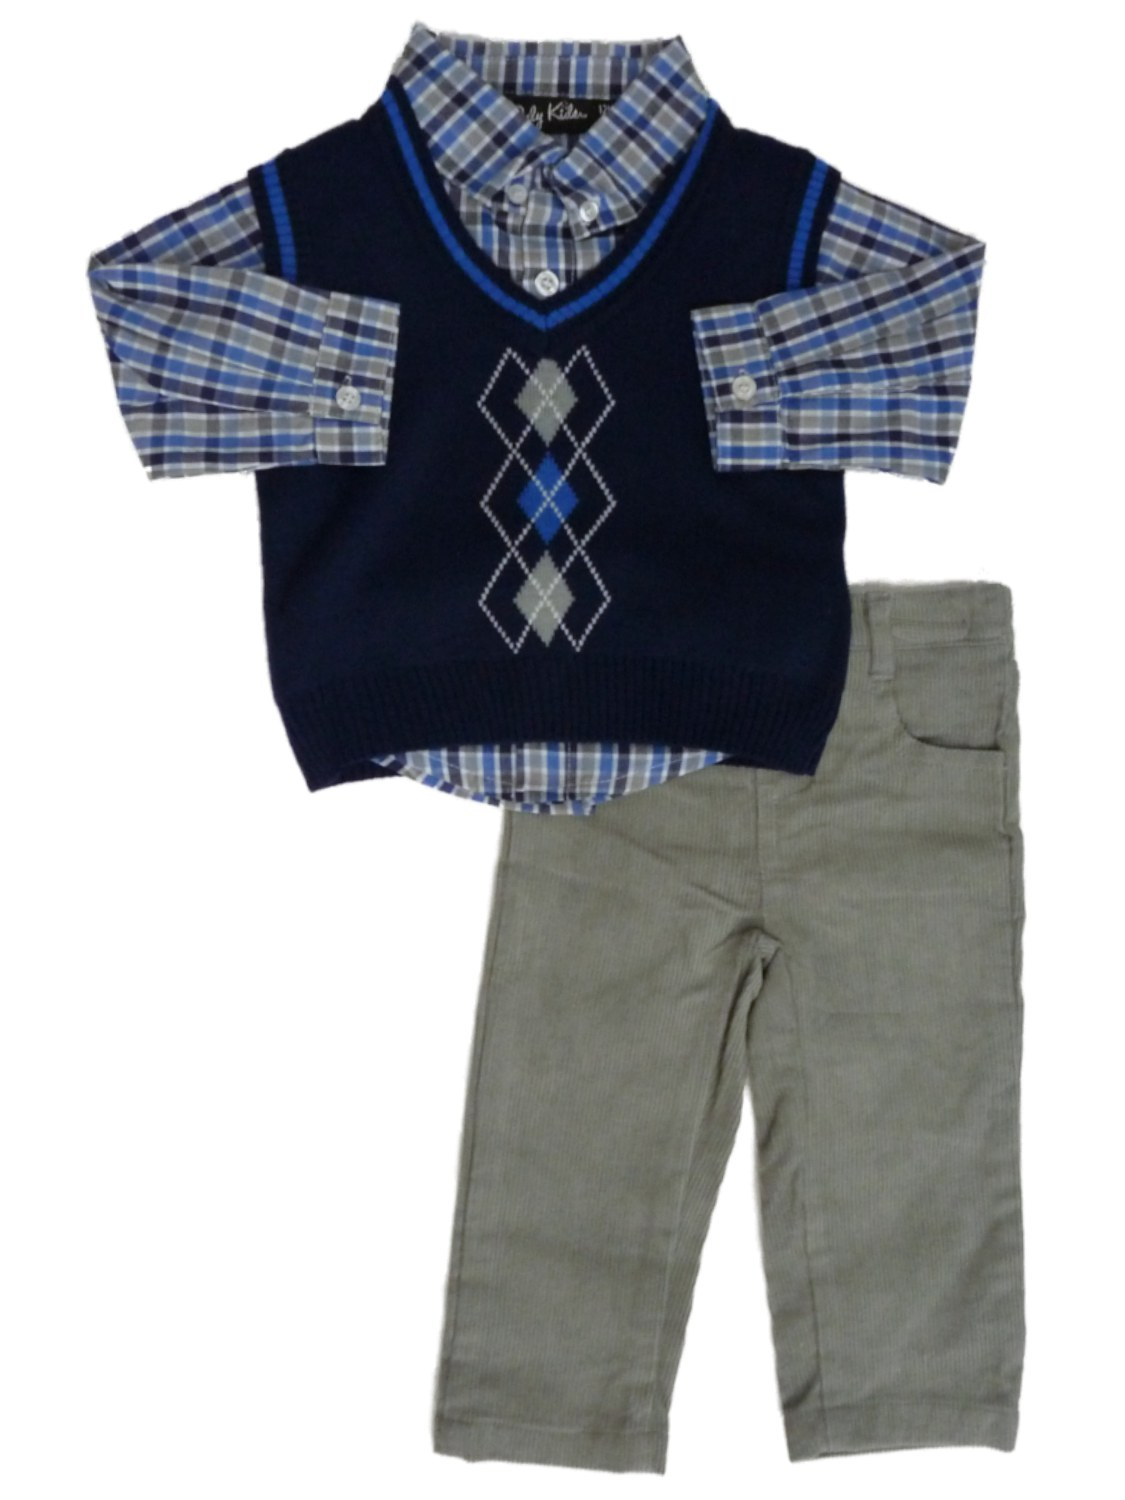 Only Kids Only Kids Infant Boys 3 Piece Dress Up Outfit Pants Shirt & Blue Sweater Vest